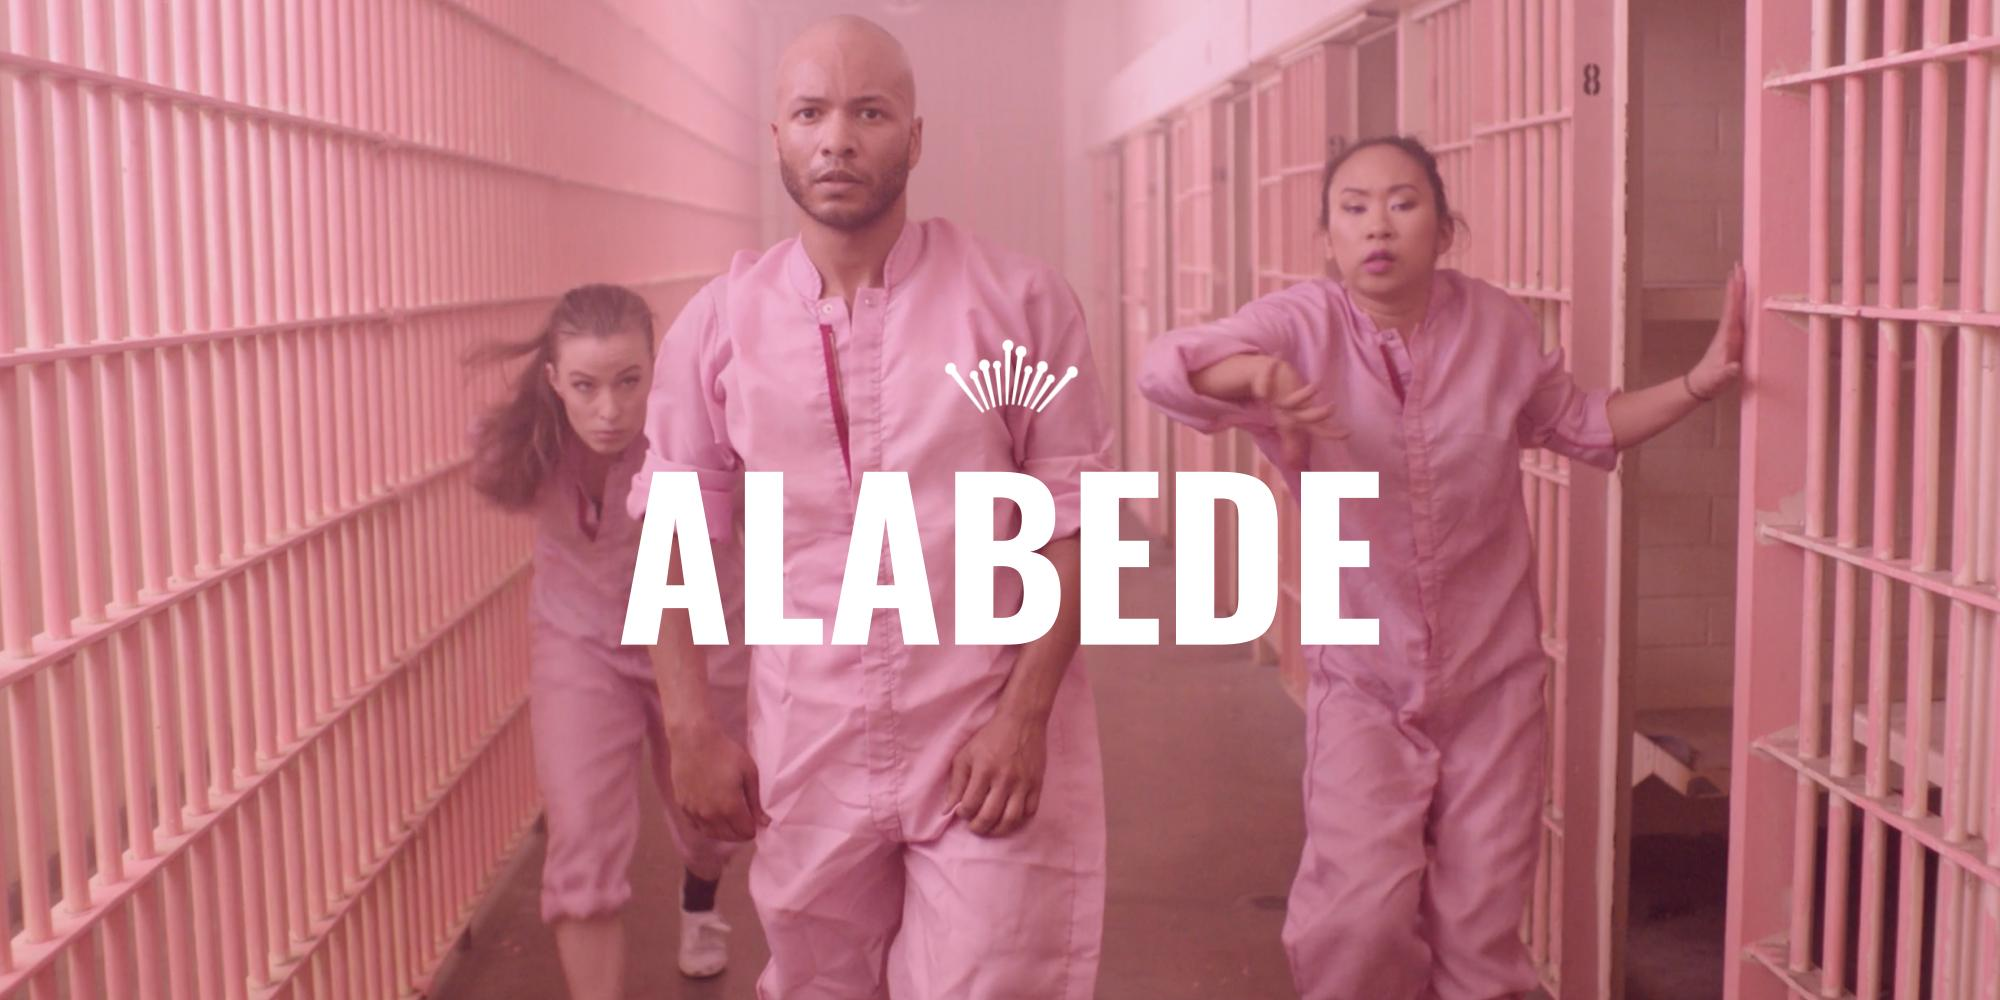 ALABEDE